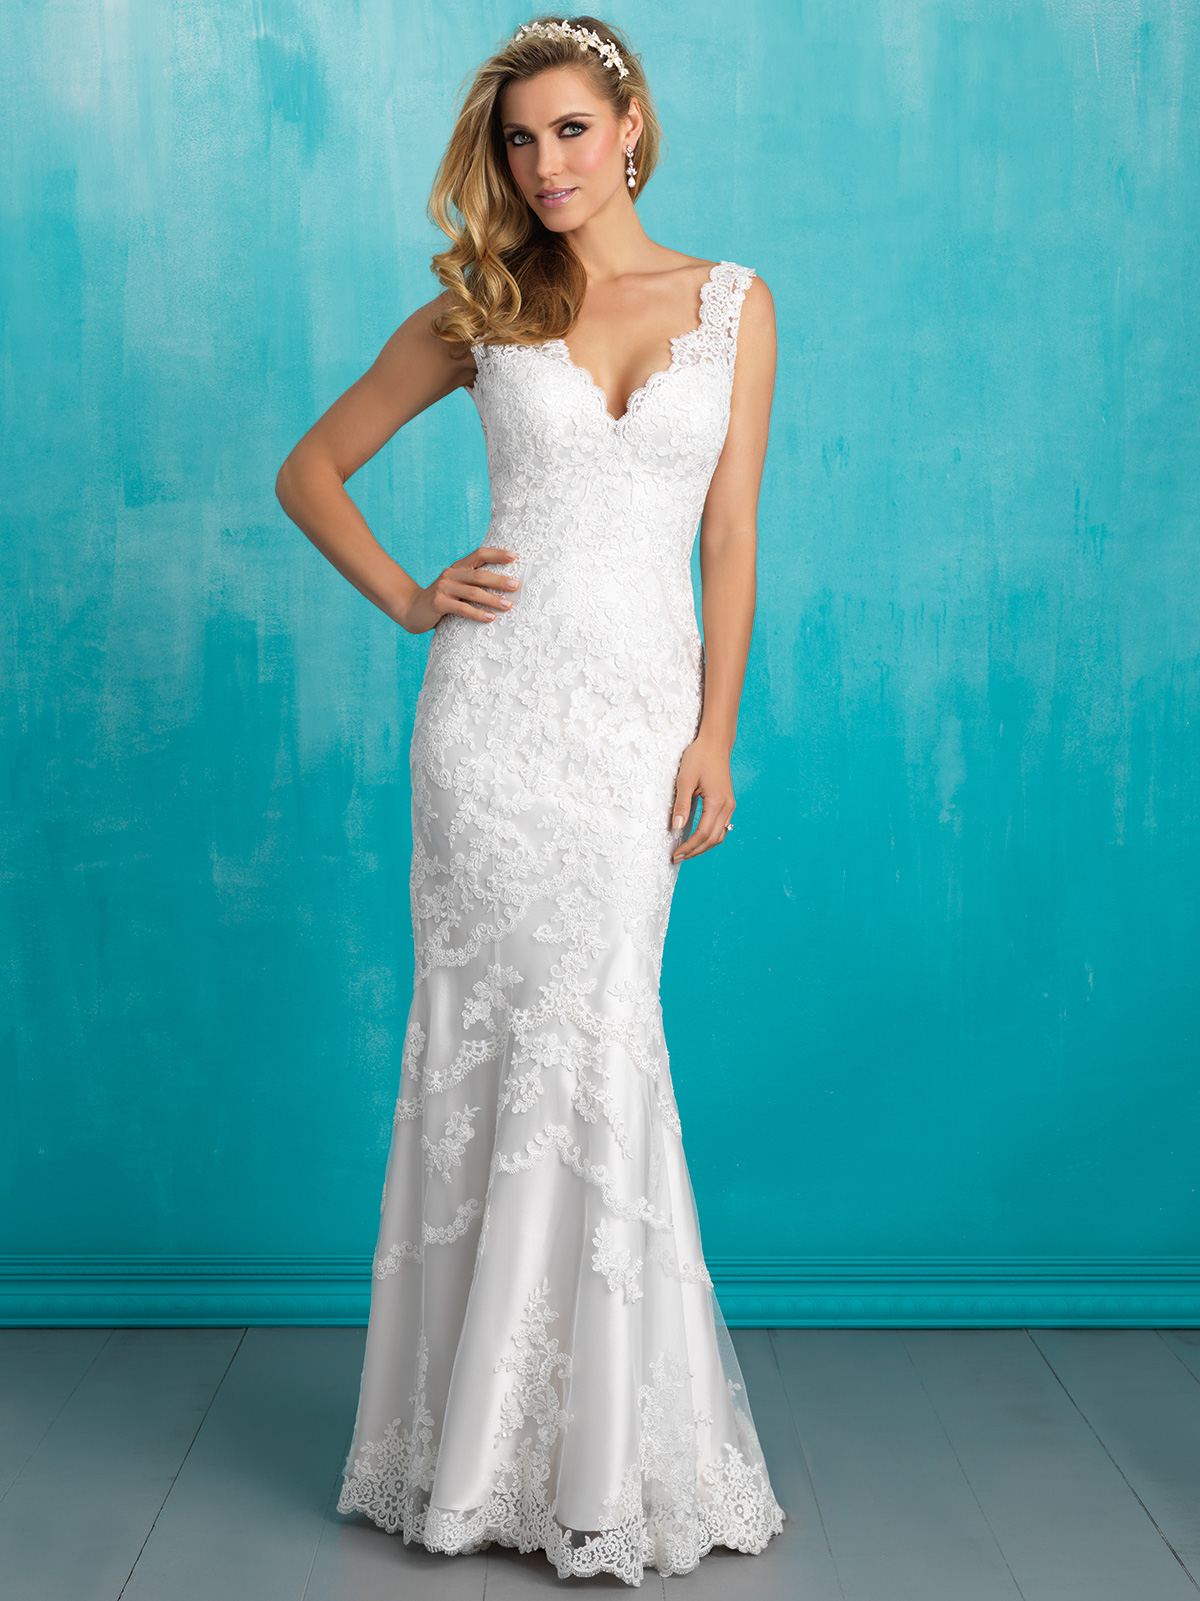 Allure 9304 V-neck Lace Sheath Bridal Dress|DimitraDesigns.com